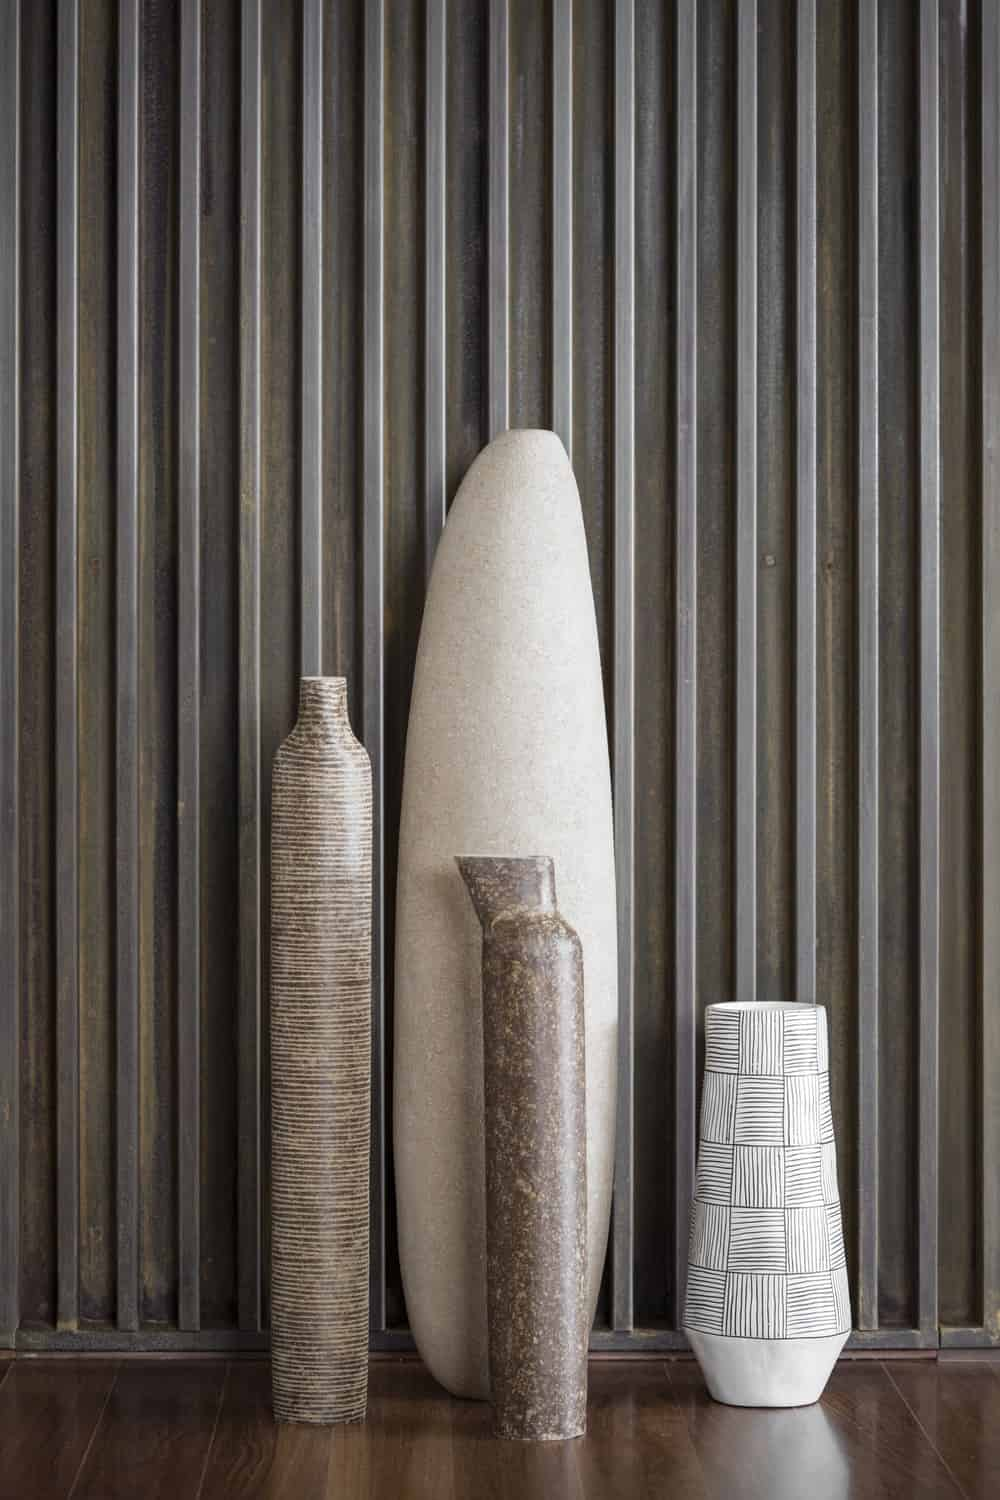 This is a close look at the various decorative vases of the slatted wall.